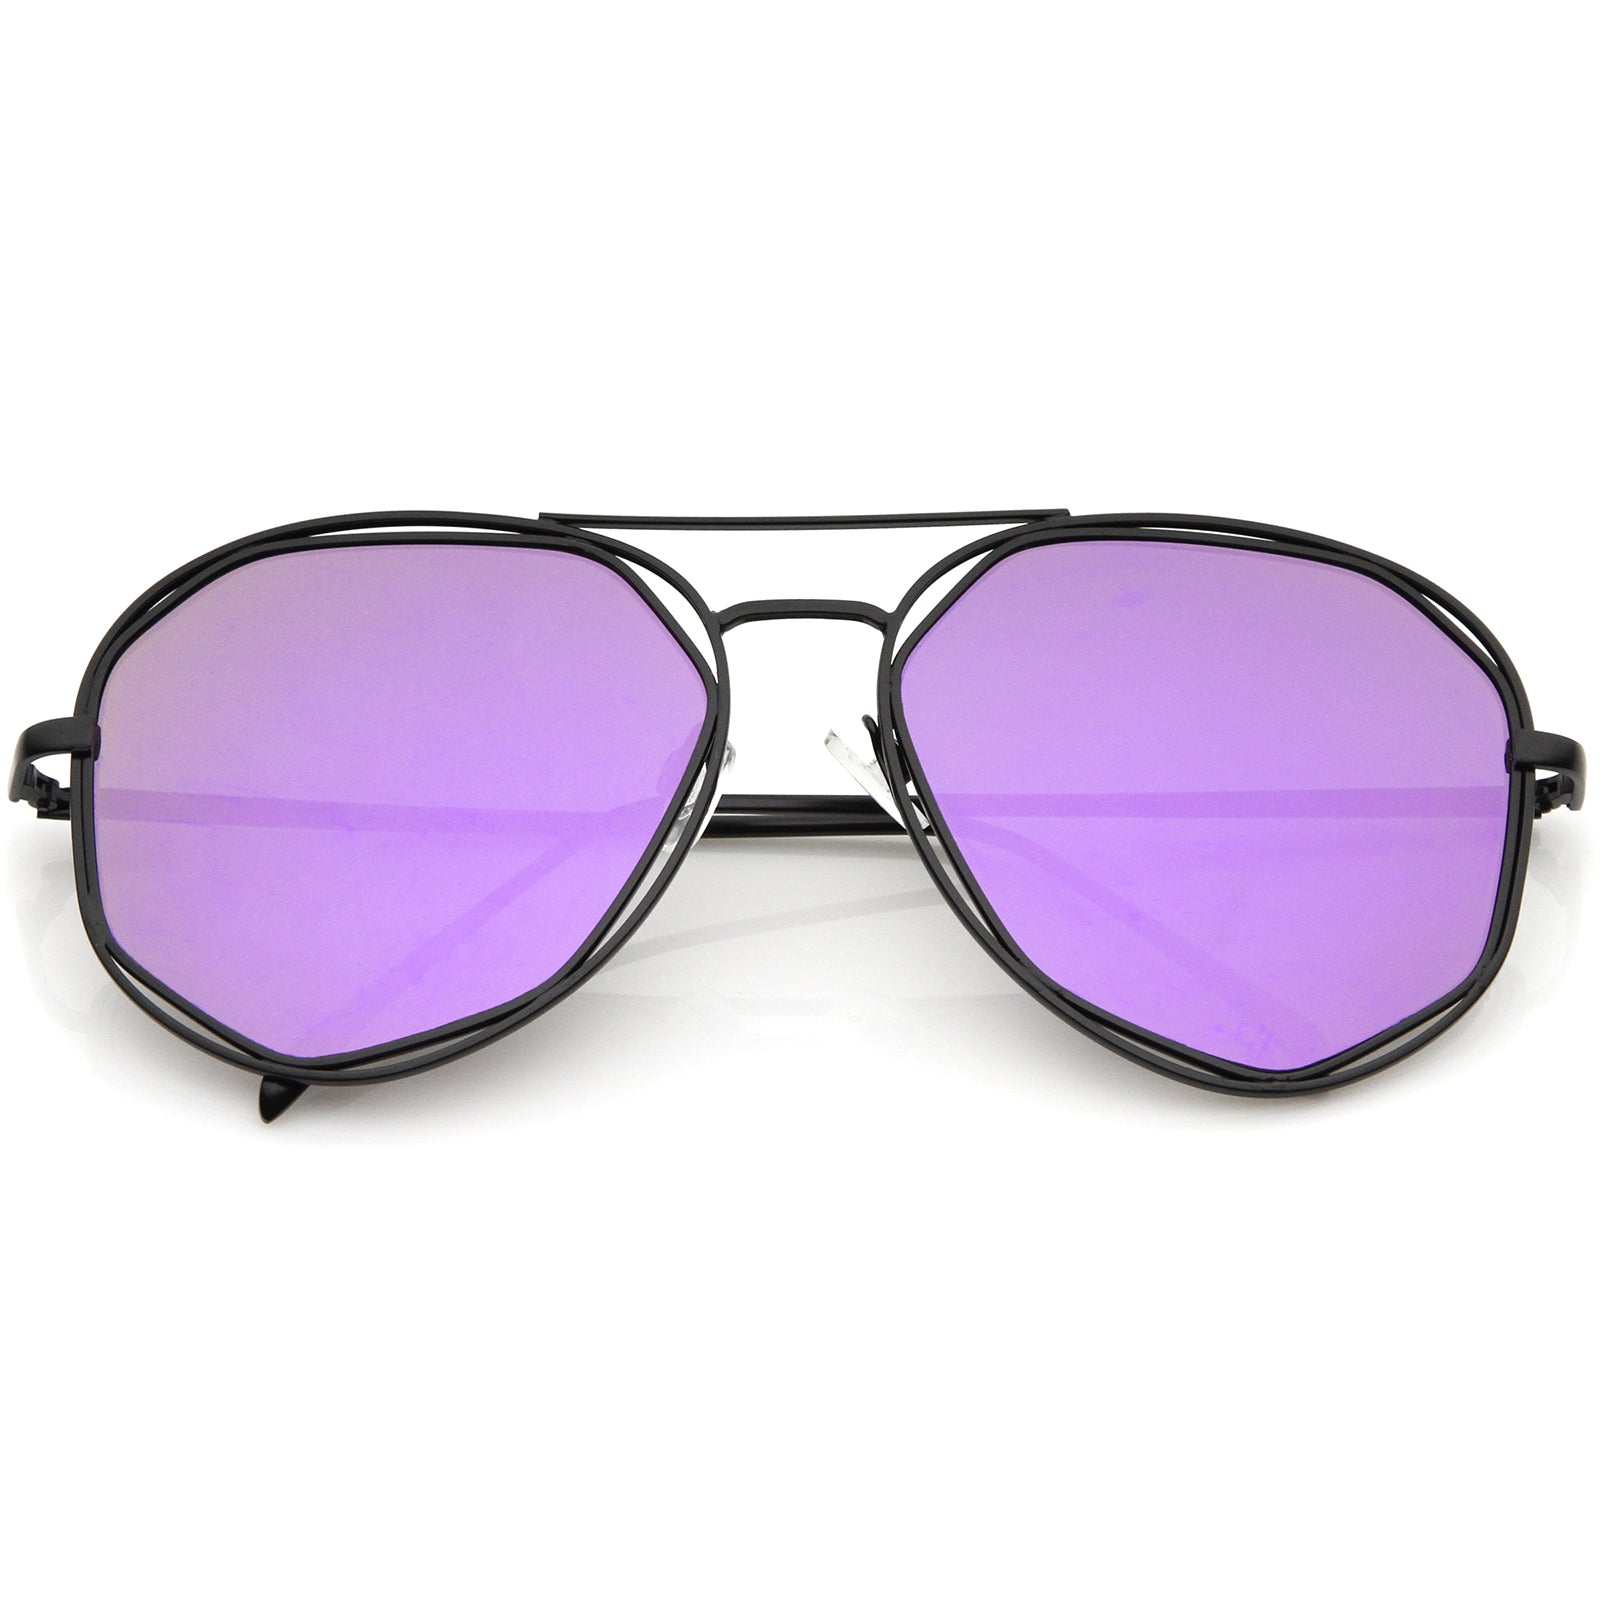 Geometric Hexagonal Metal Frame Colored Mirror Flat Lens Aviator Sunglasses 60mm - sunglass.la - 8